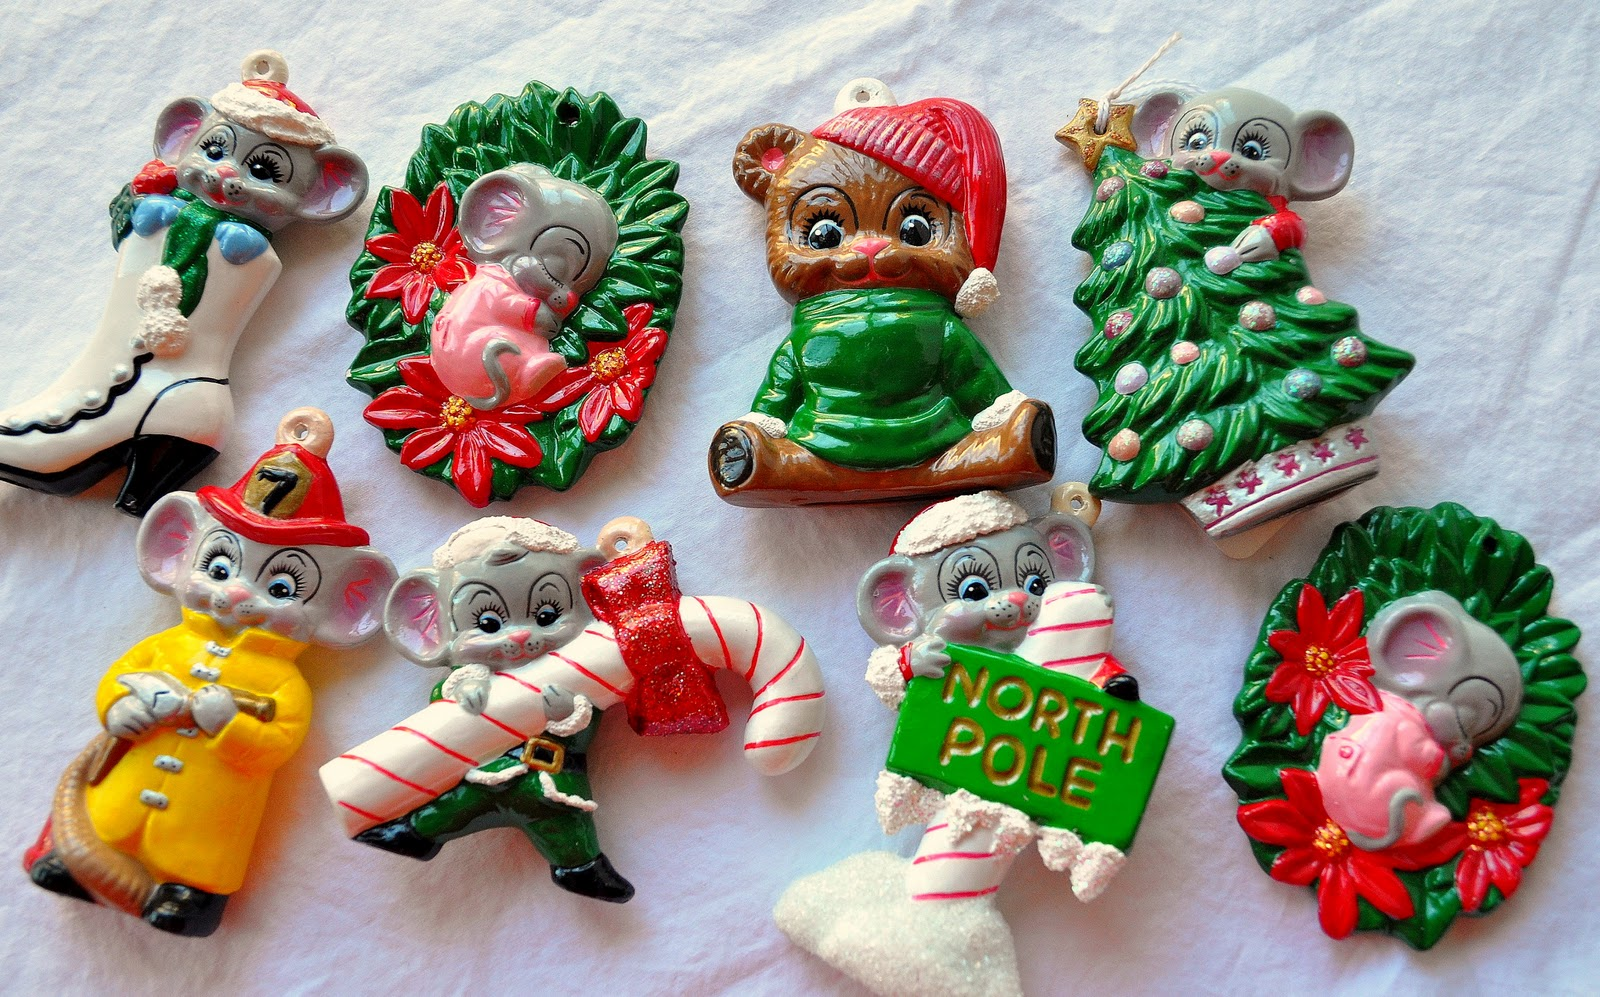 These Are Some Of The Remaining Christmas Ornaments Painted By Yours Truly  When I Was A Senior In High School A Family Friend Got Me Interested In  Painting